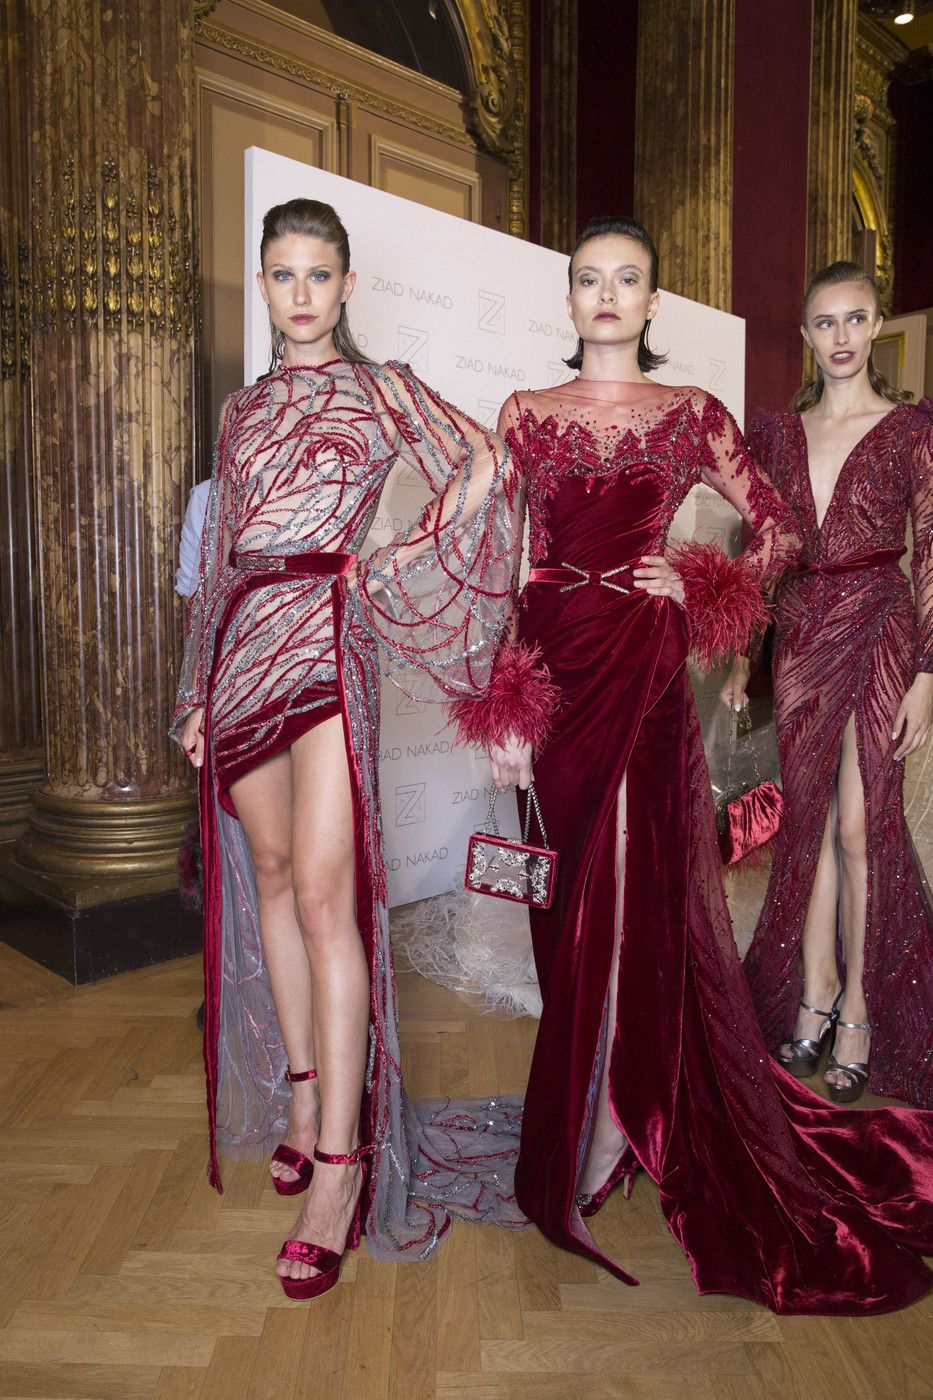 Ziad nakad at couture fall evening gowns u cocktail dresses